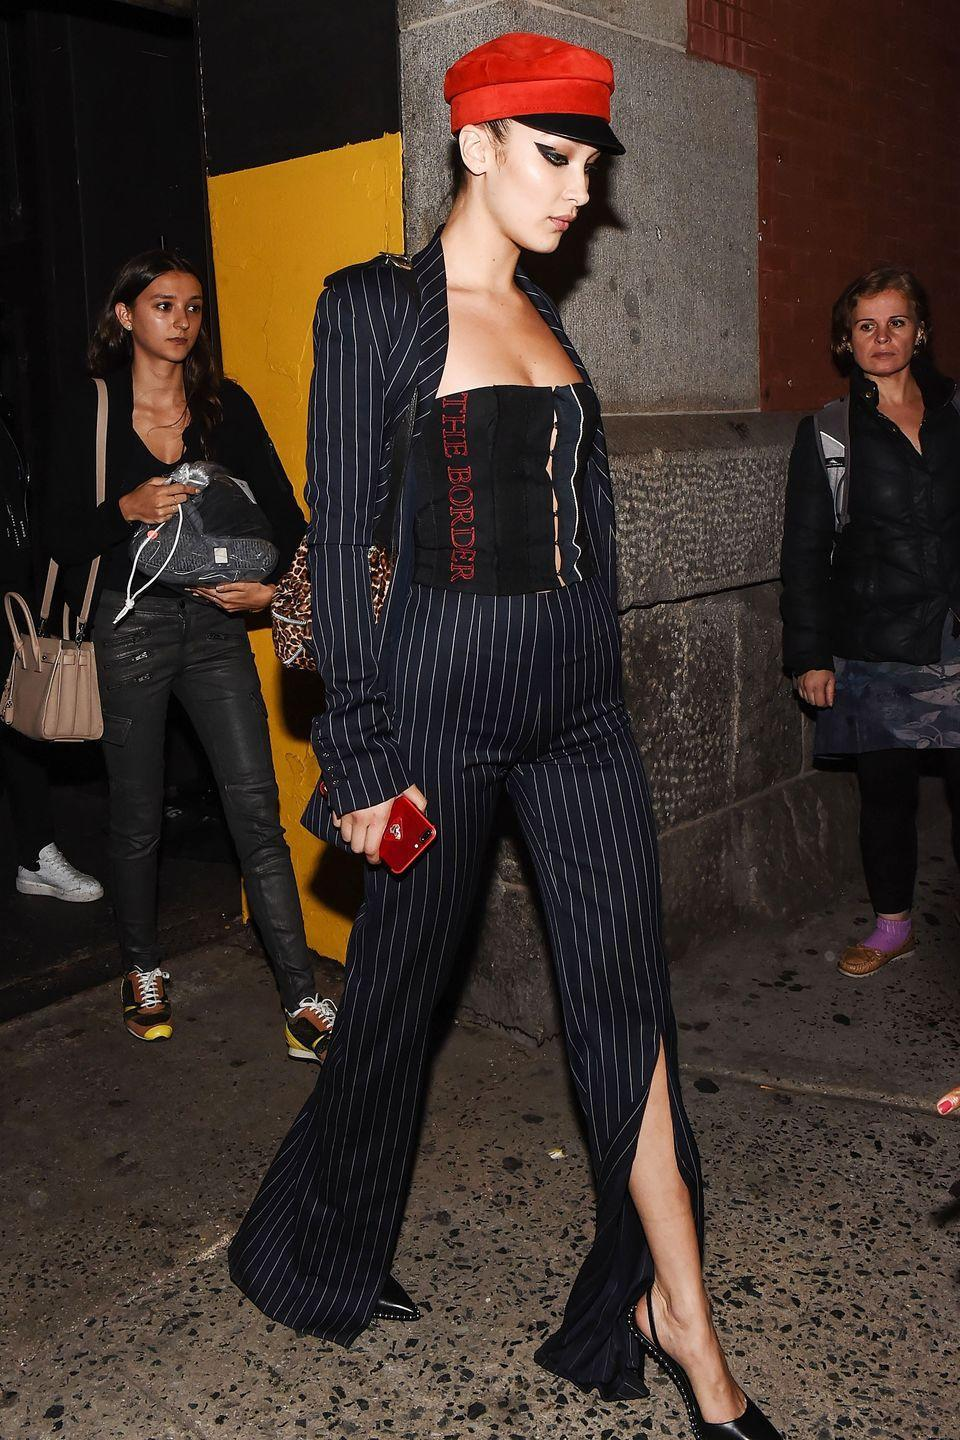 <p>In a corset top with a navy pinstriped suit, Alexander Wang heels and a red newsboy hat while leaving the Marc Jacobs show in New York City.</p>